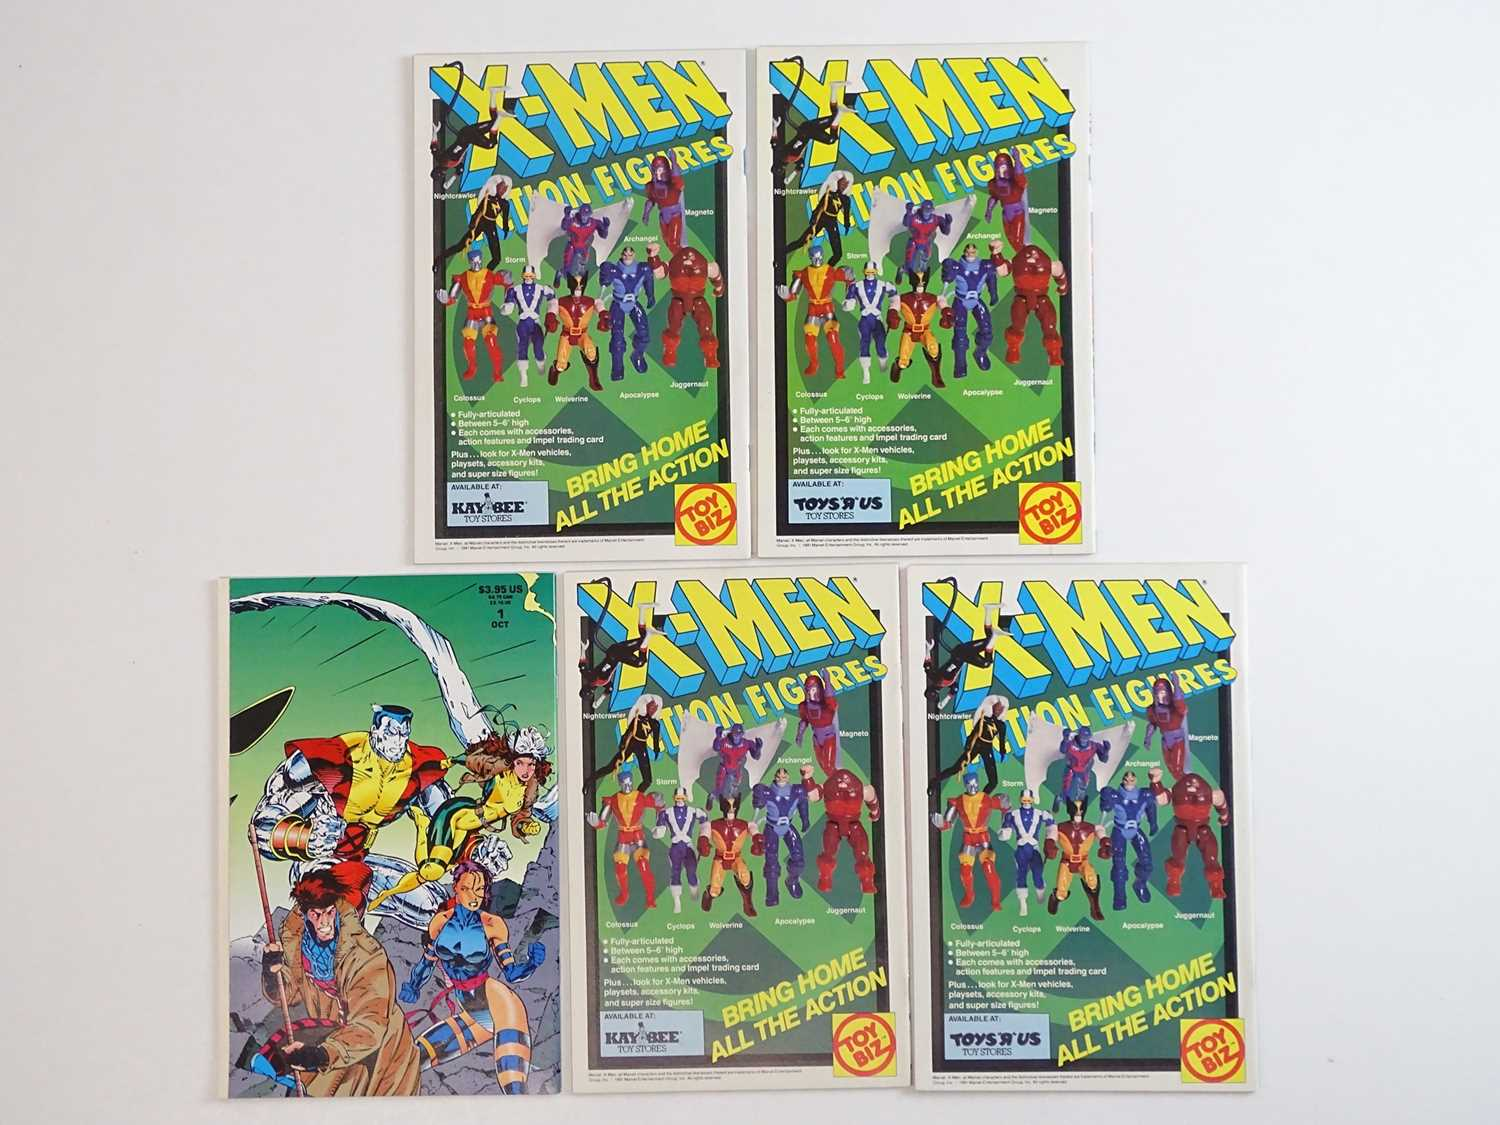 X-MEN #1 - (5 in Lot) - (1991 - MARVEL) - Complete set of ALL five variant covers - Jim Lee - Image 2 of 2